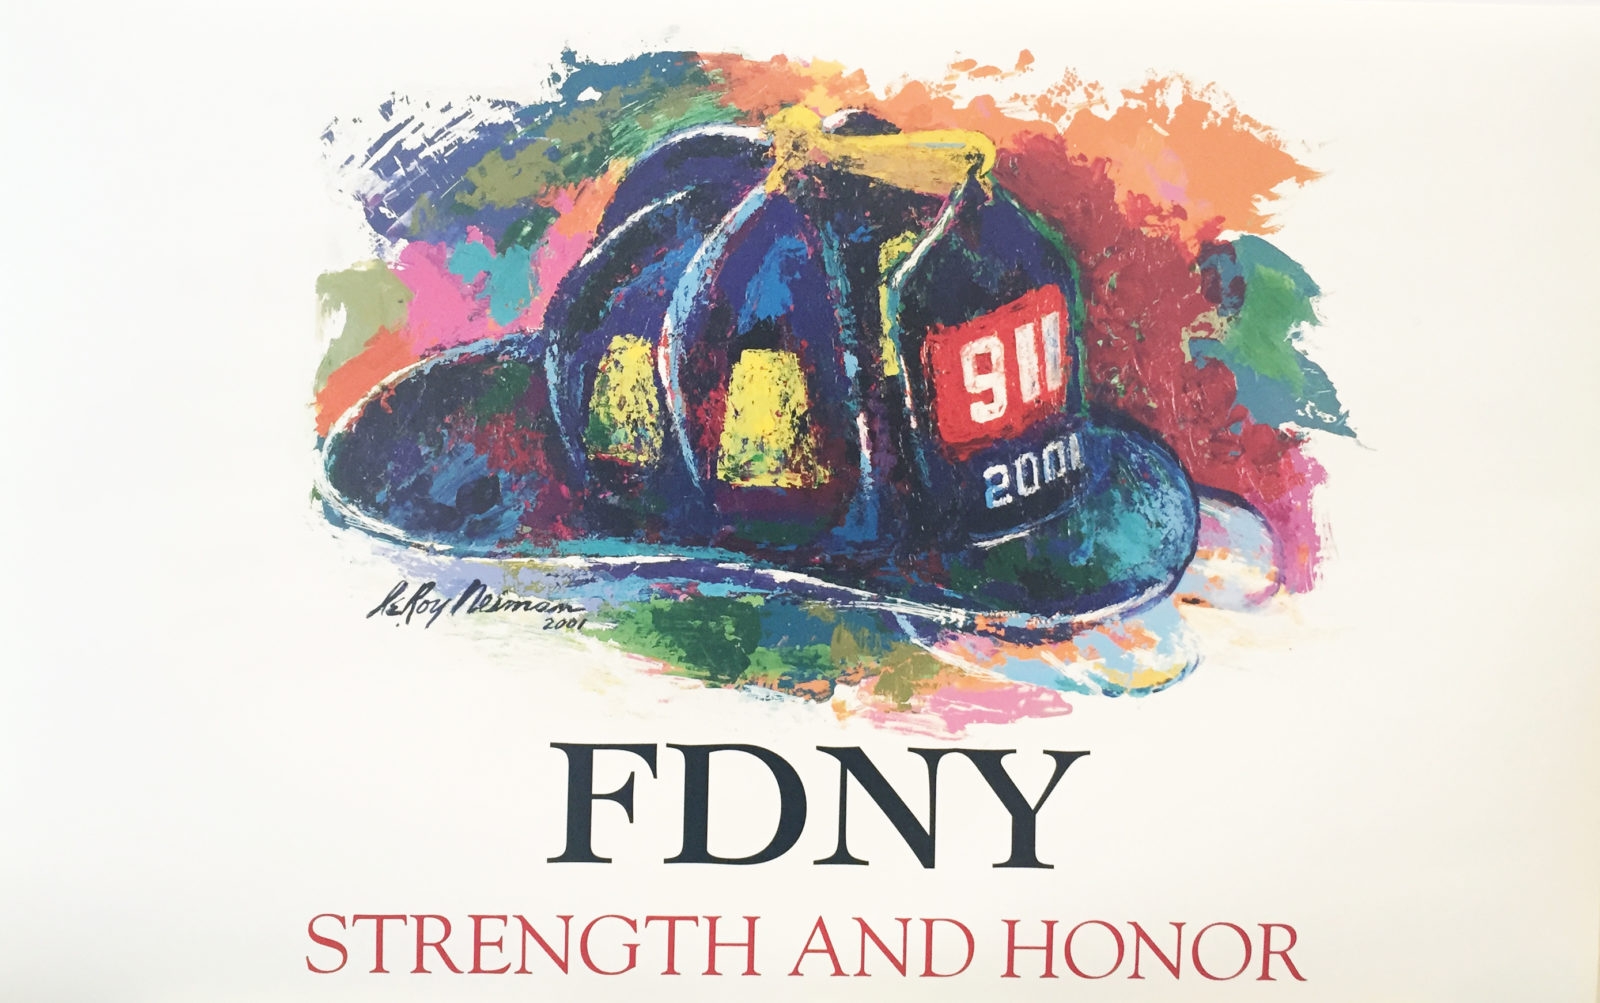 FDNY poster